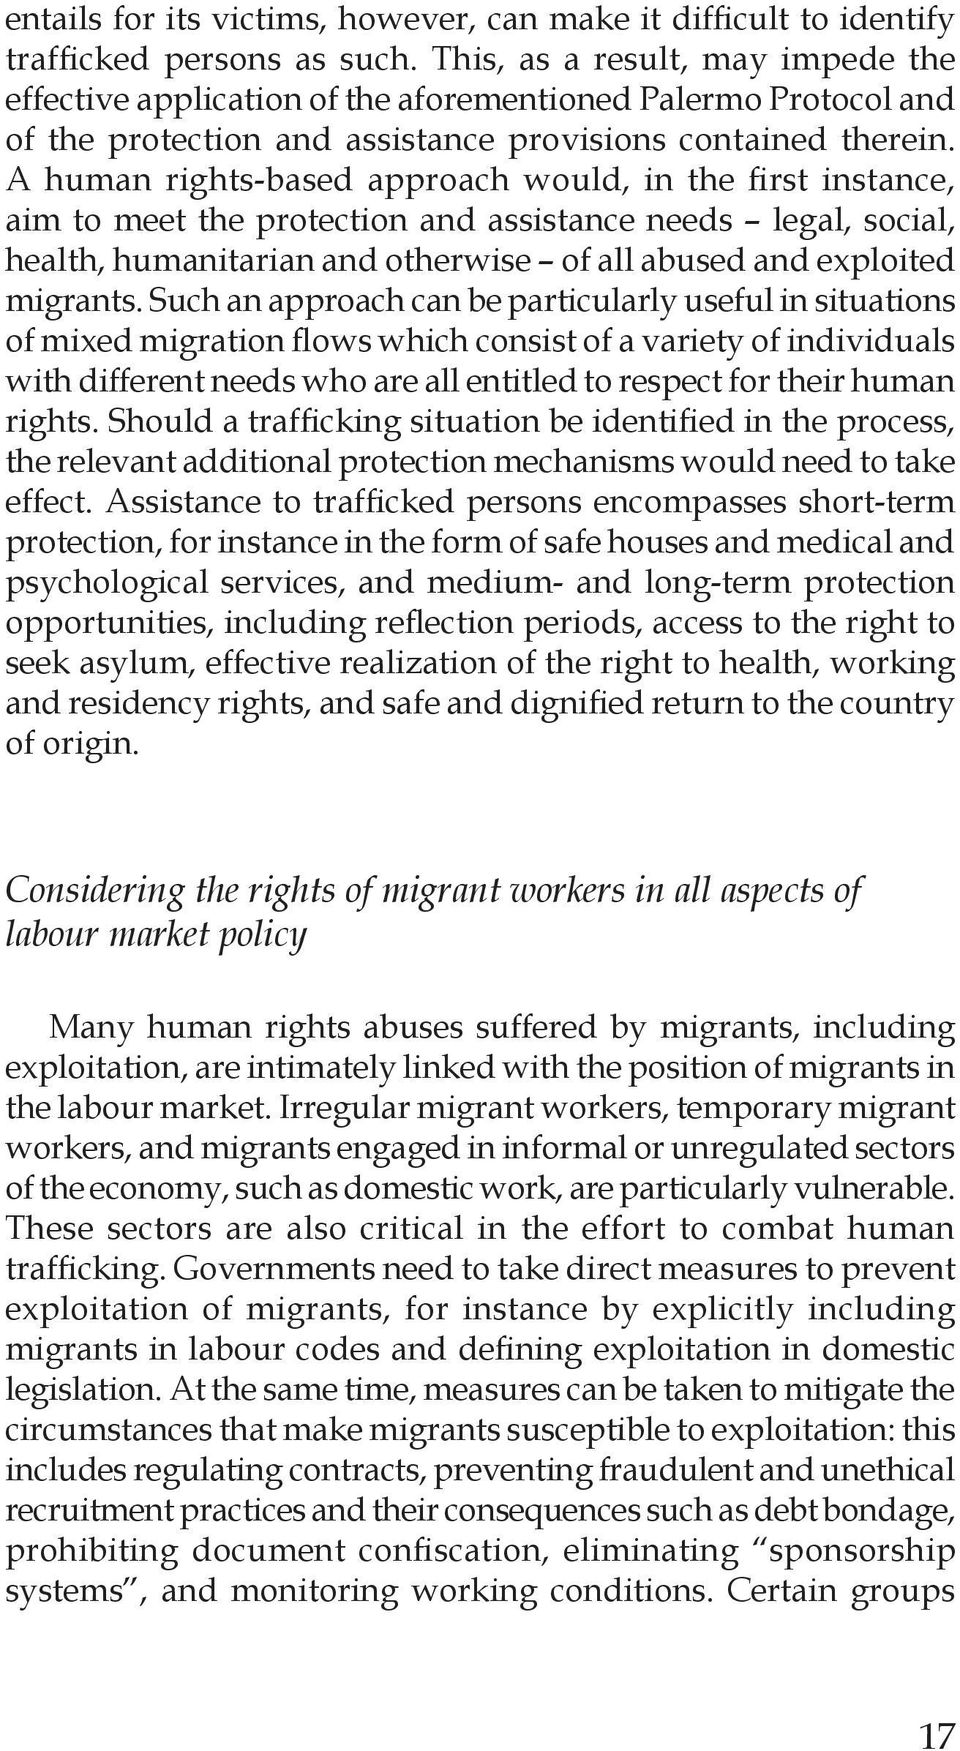 A human rights-based approach would, in the first instance, aim to meet the protection and assistance needs legal, social, health, humanitarian and otherwise of all abused and exploited migrants.